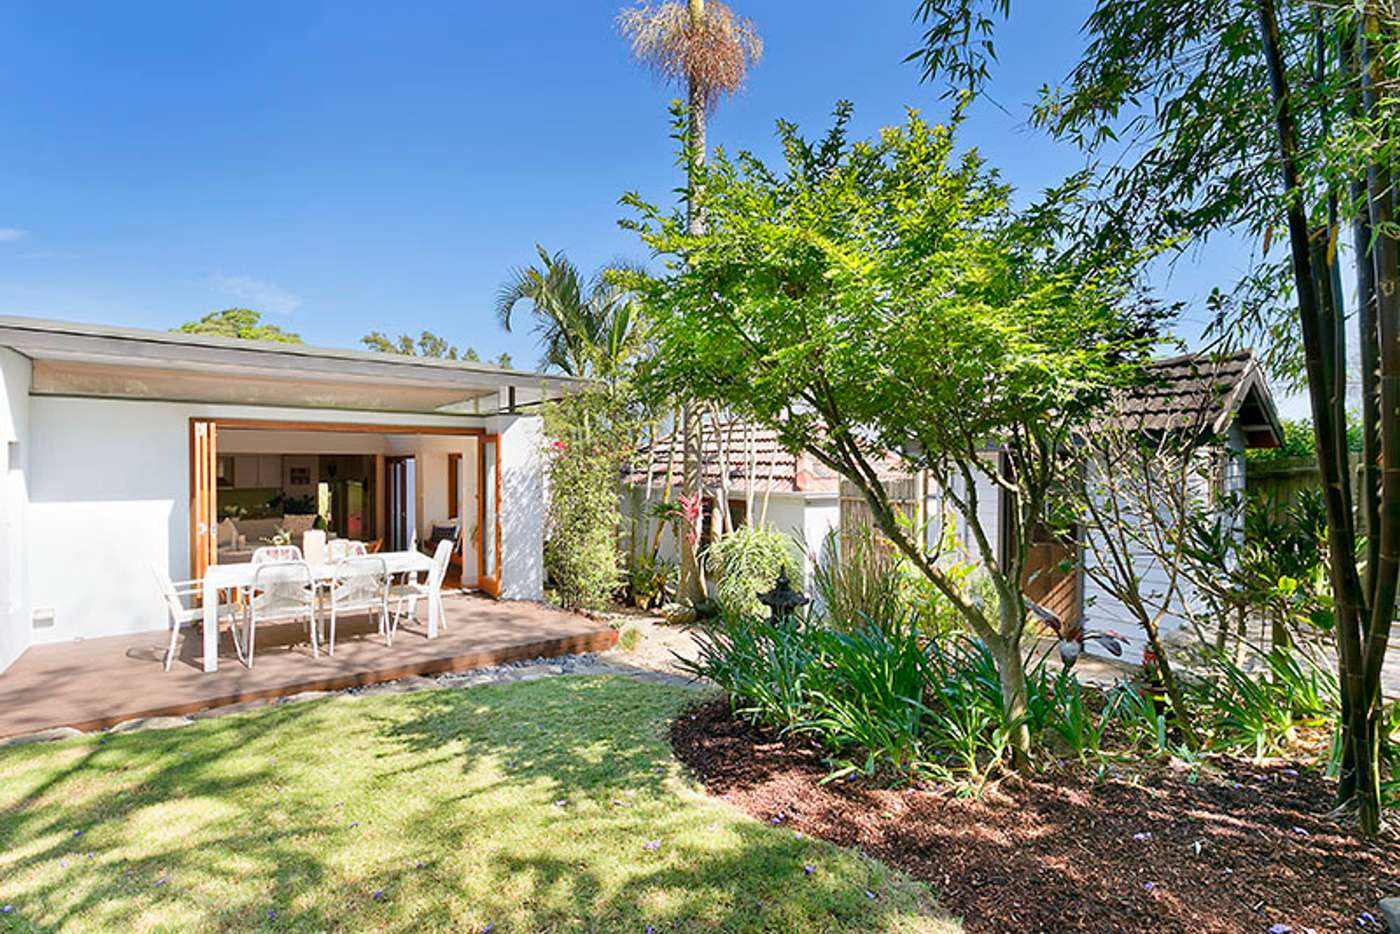 Sixth view of Homely house listing, 10 Daintrey Street, Fairlight NSW 2094